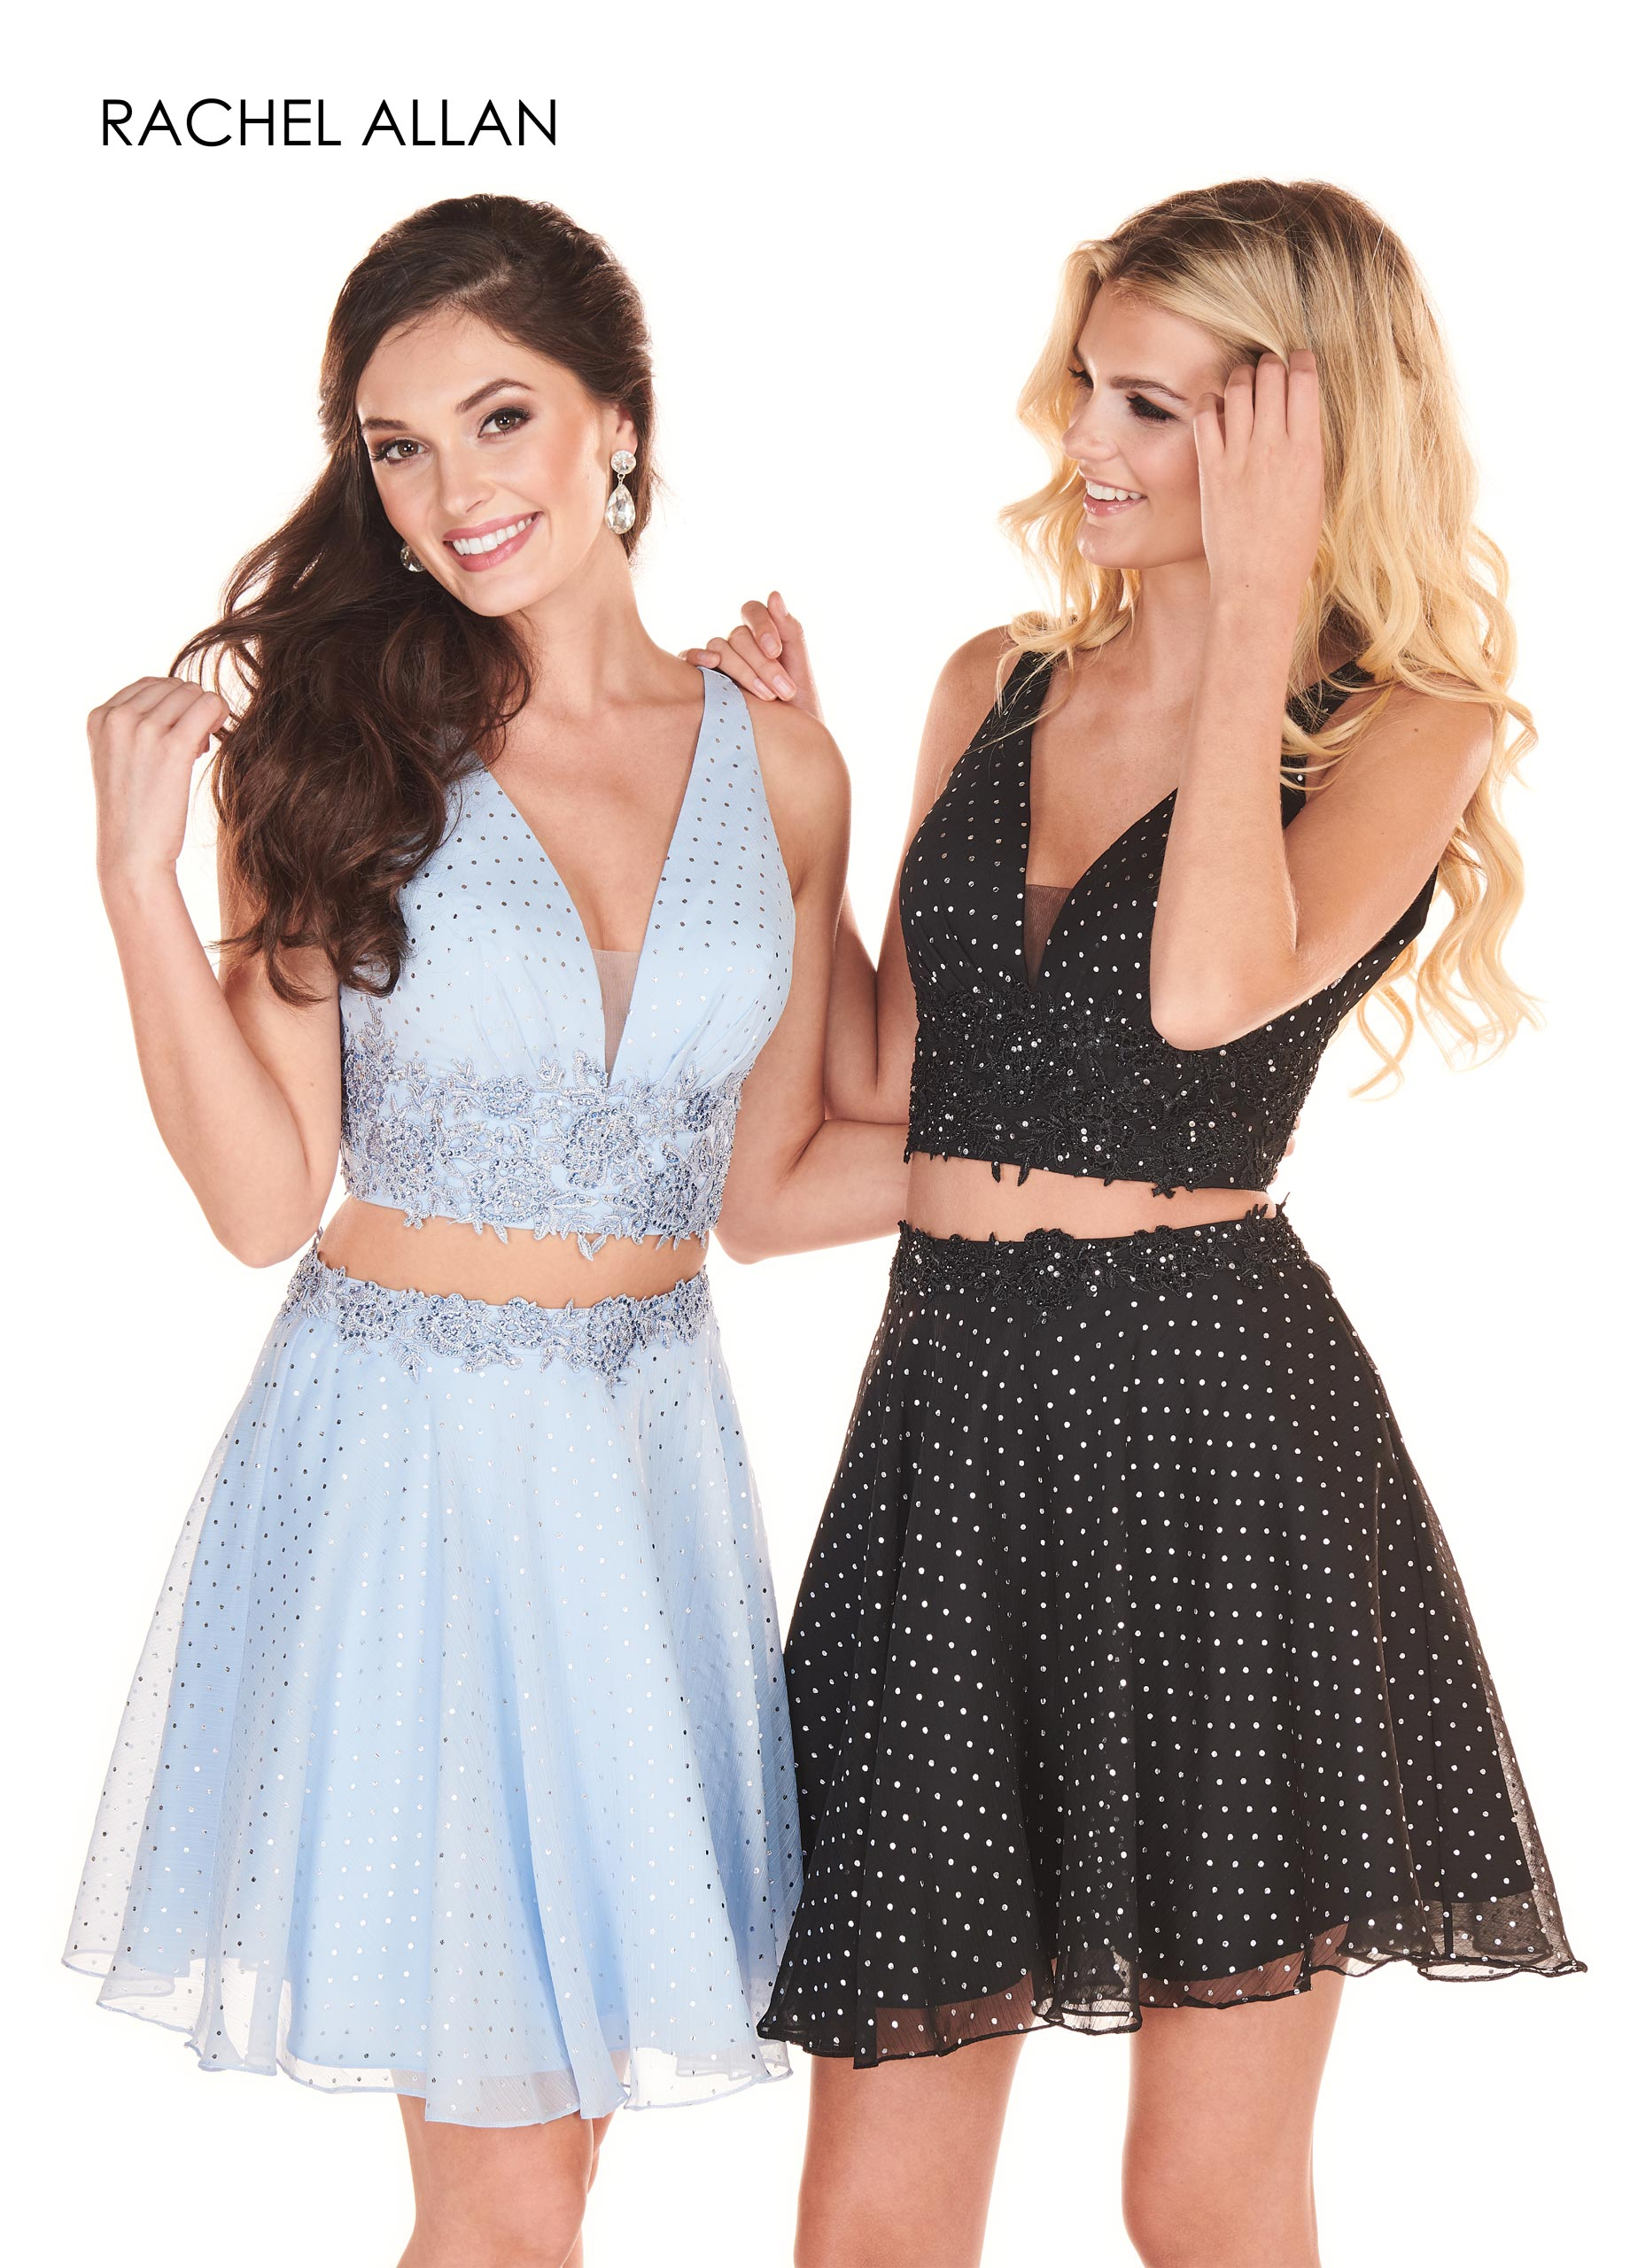 V-Neck A-Line Homecoming Dresses in Blue Color